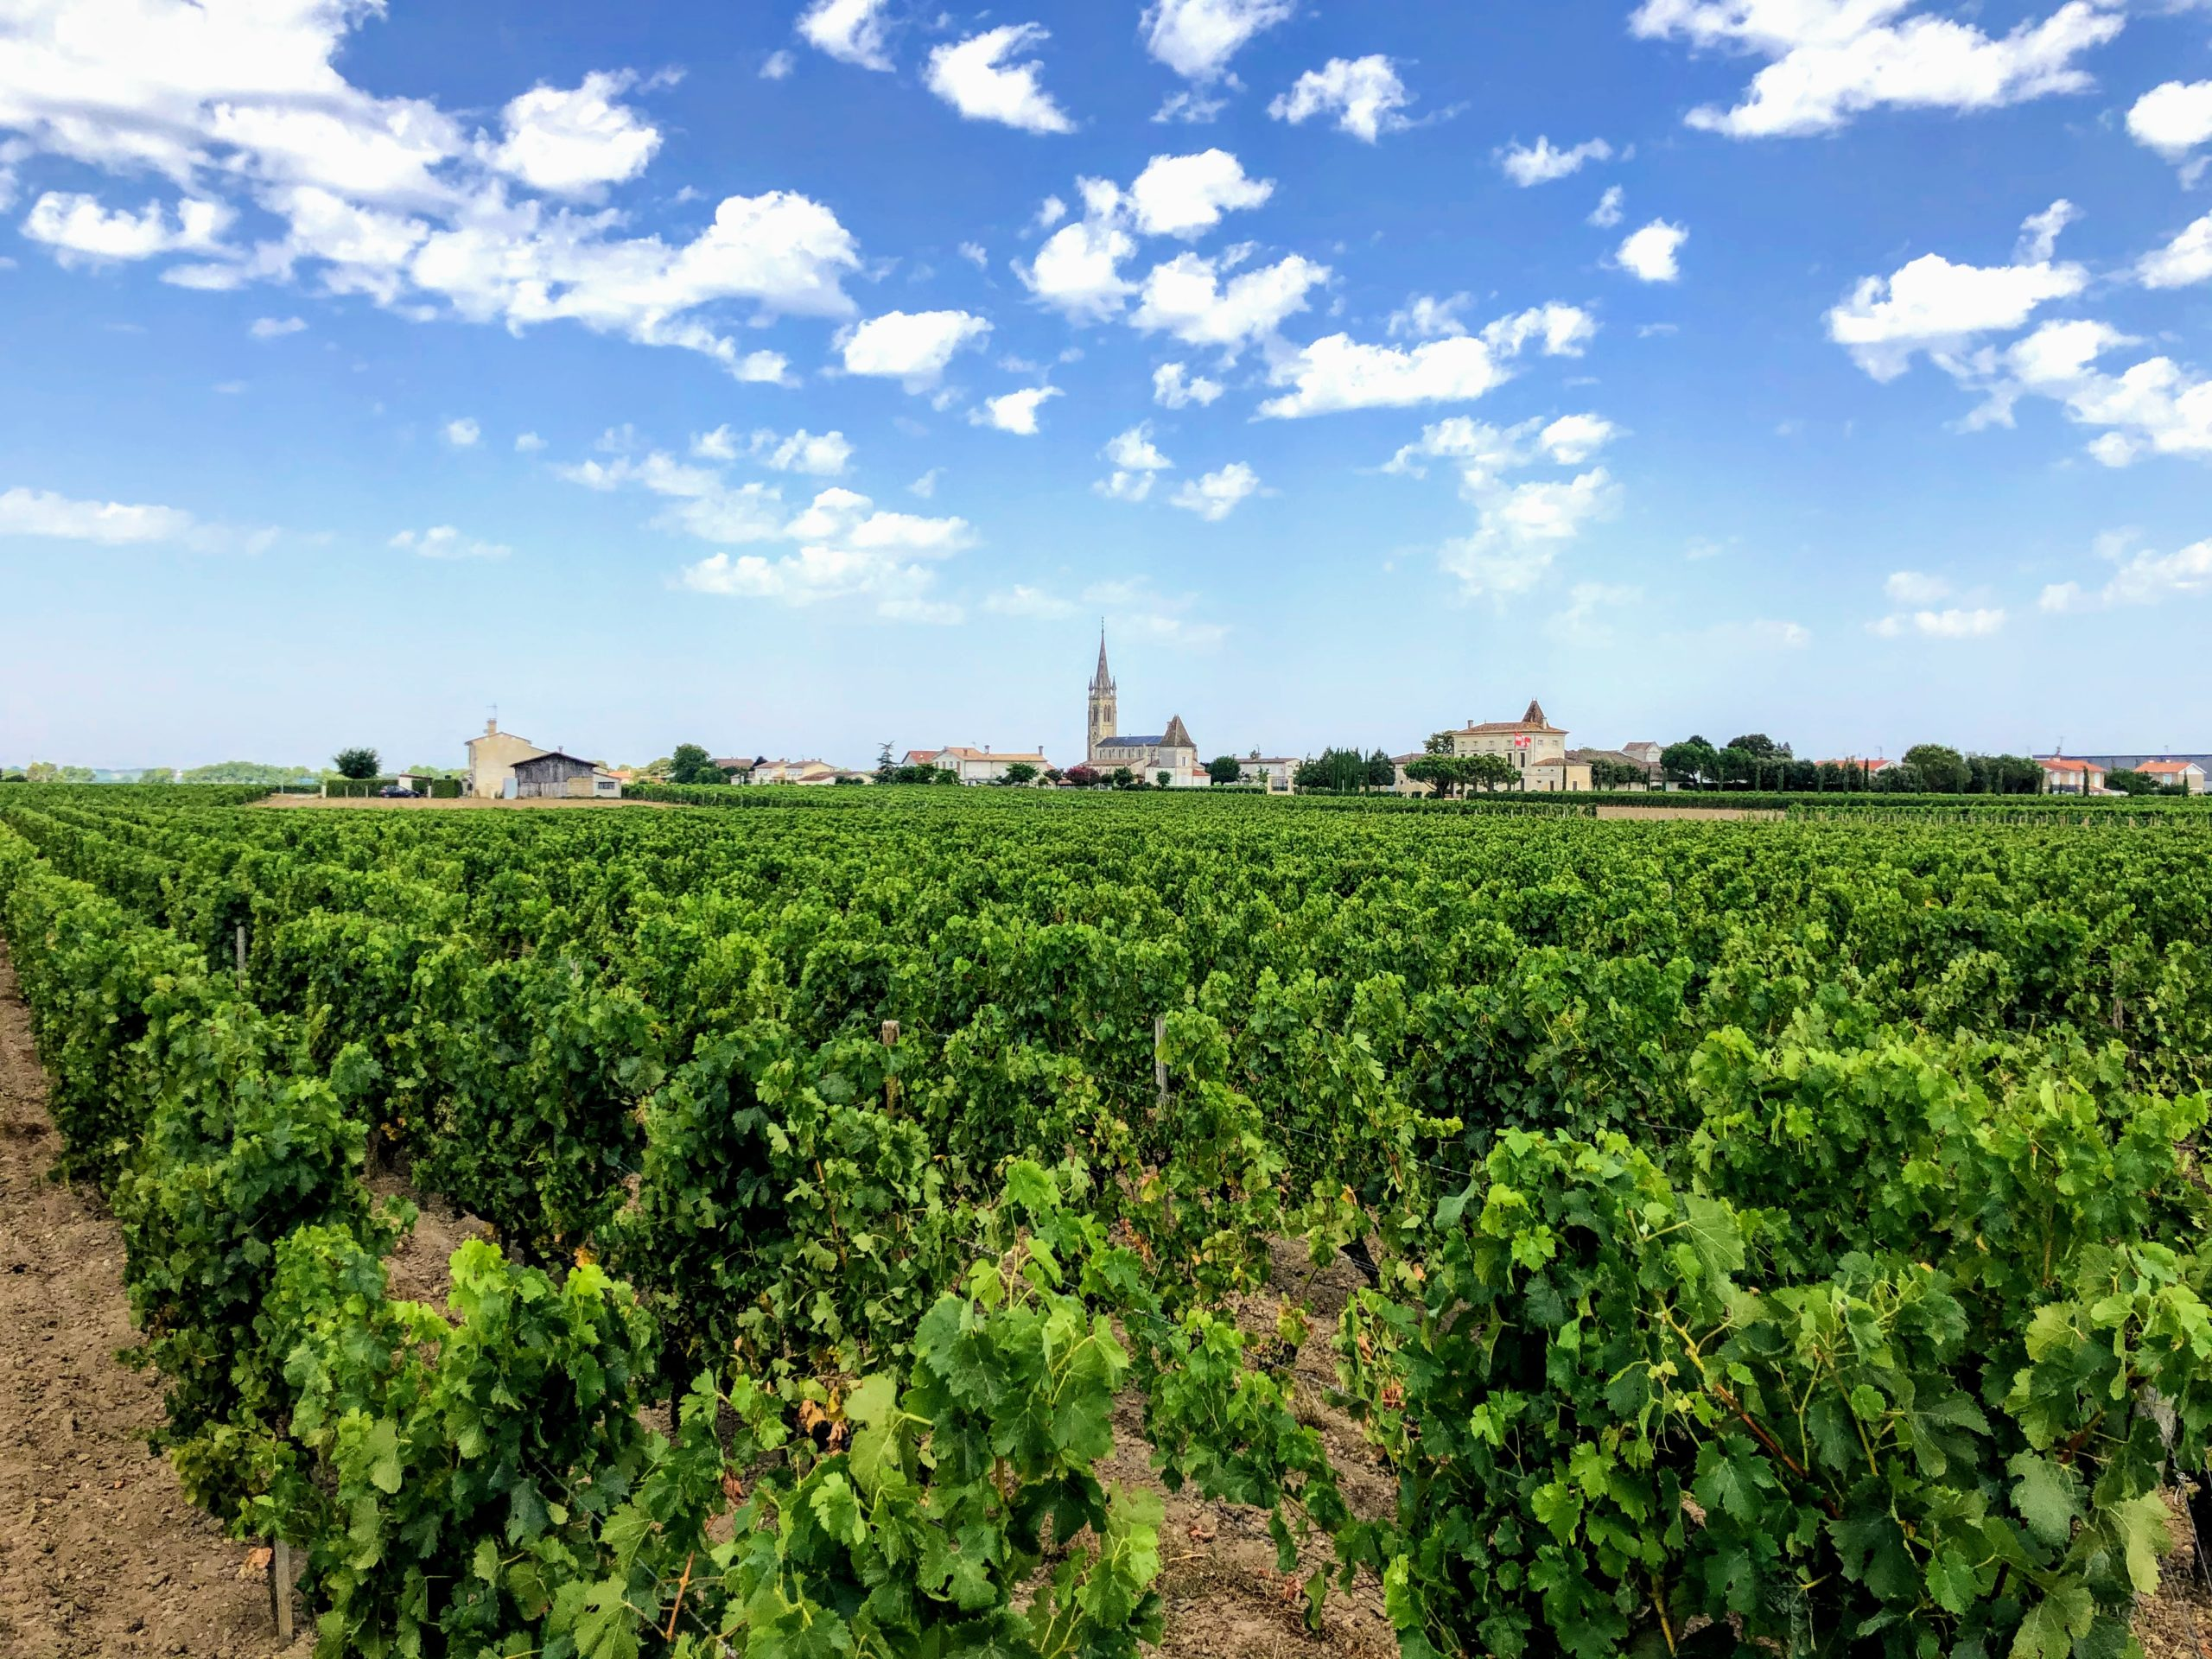 Pomerol vineyards